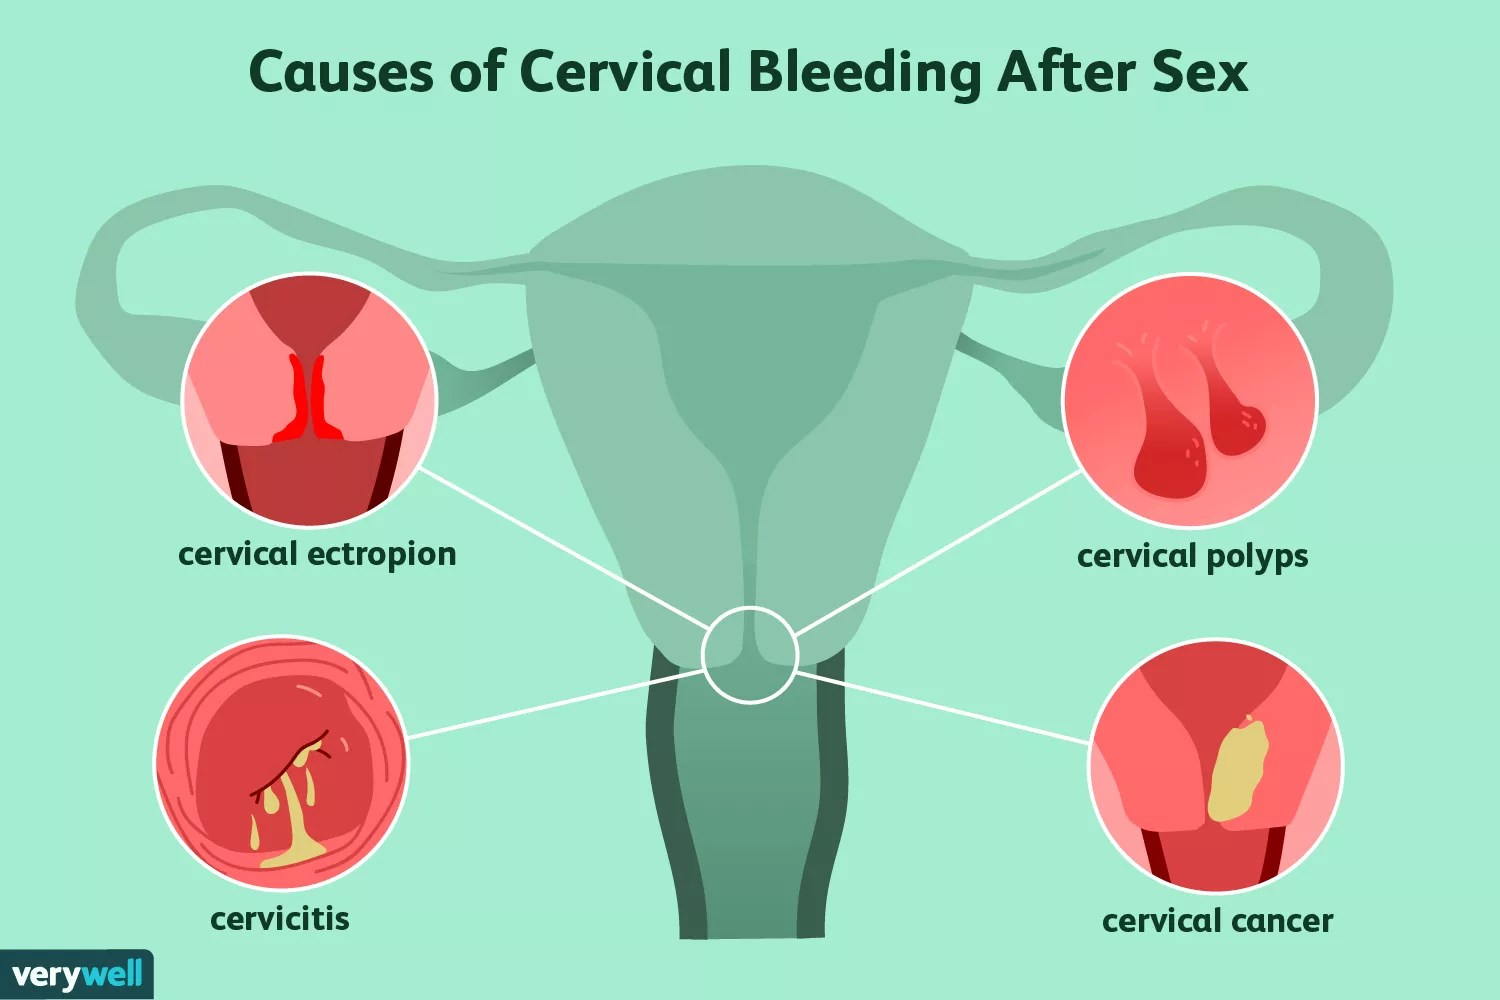 Causes of cervical bleeding after sex